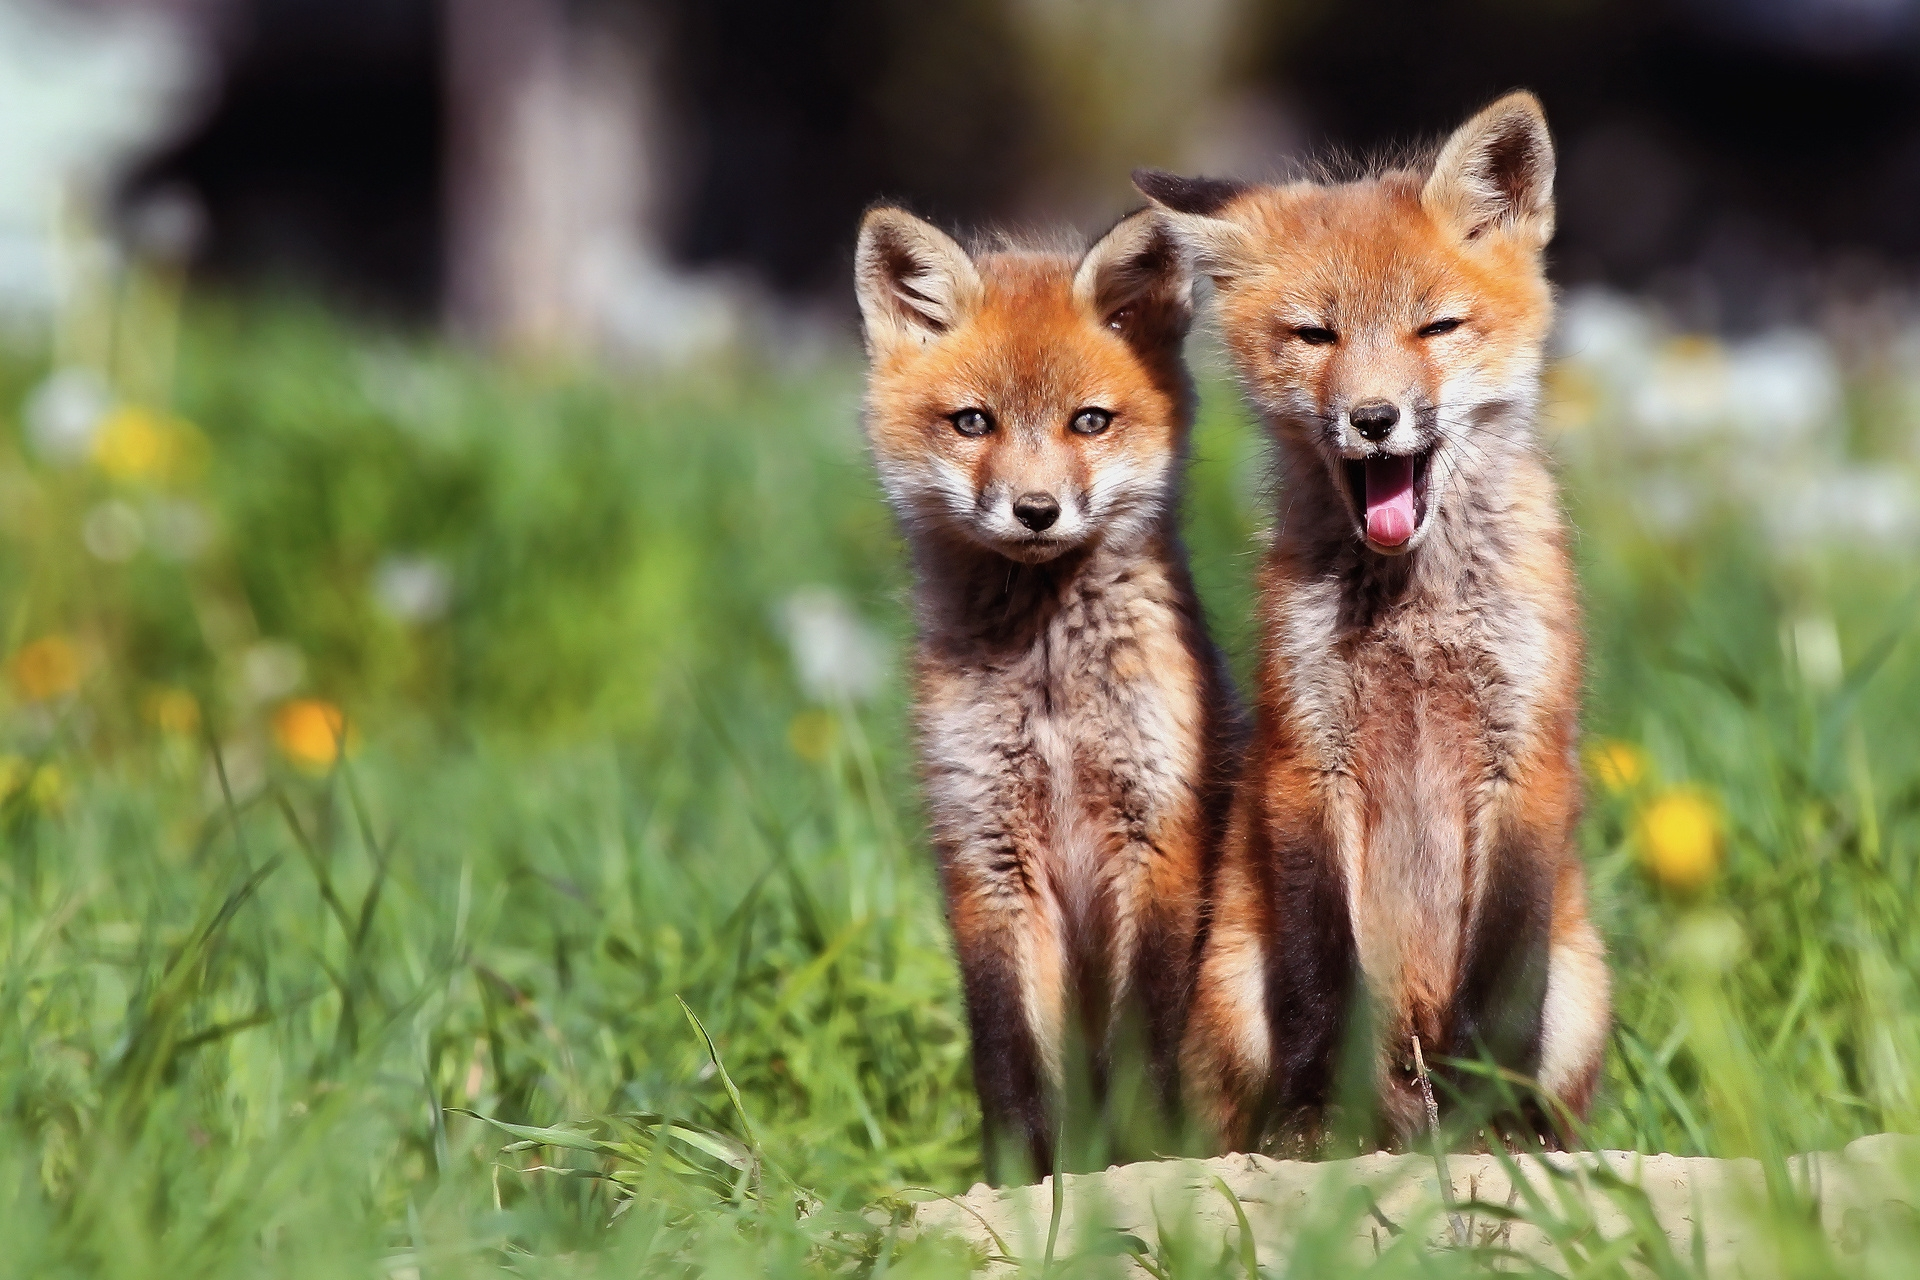 63350 download wallpaper Animals, Fox, Couple, Pair, Cubs, Young, Grass, Open Mouth screensavers and pictures for free